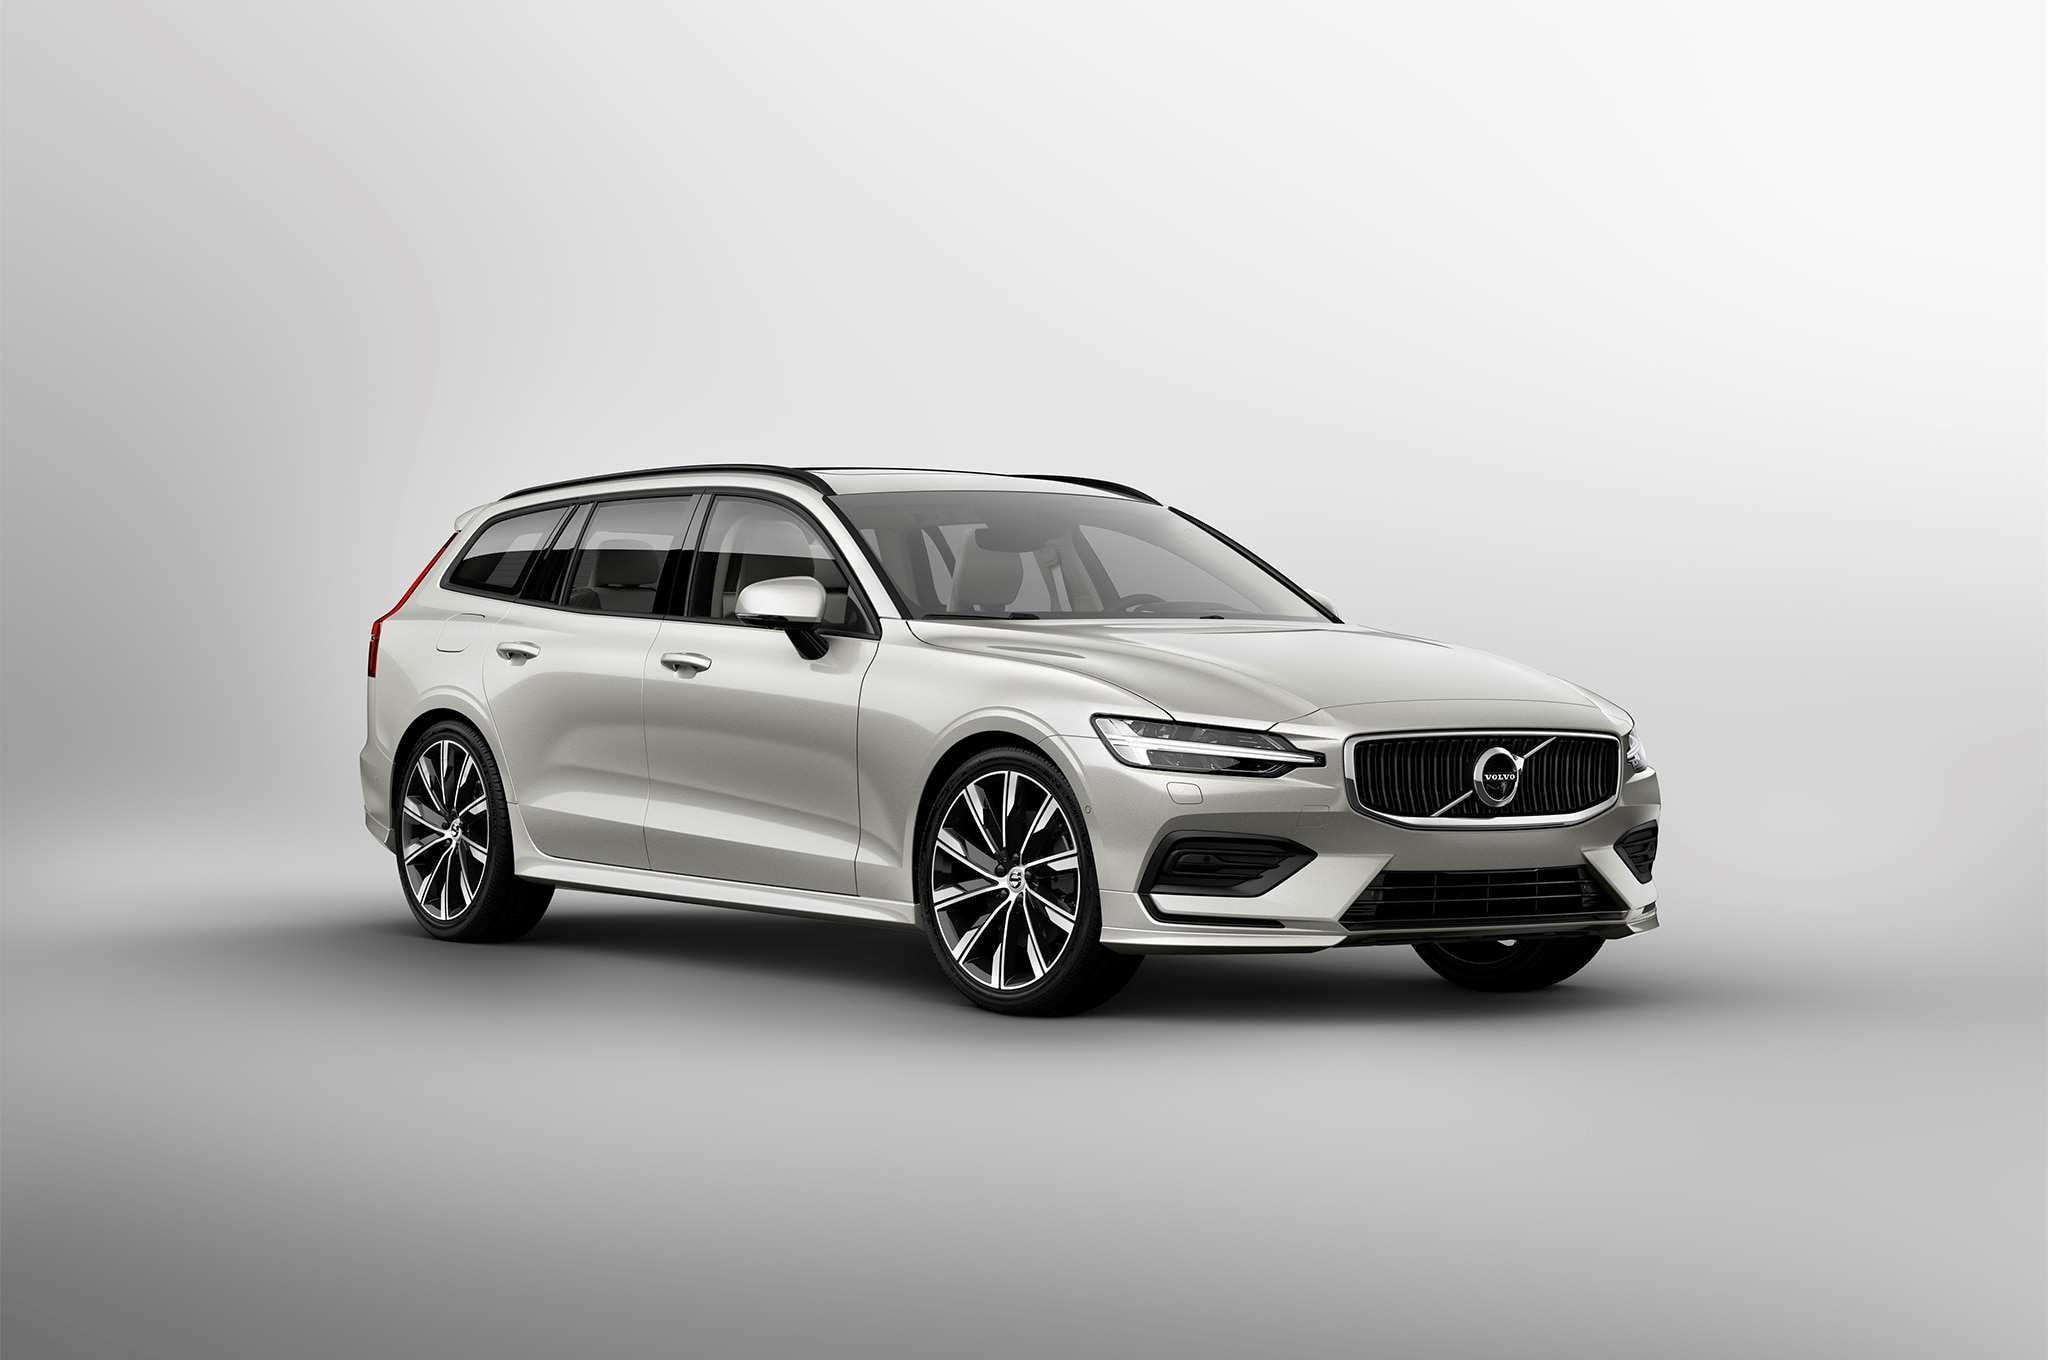 37 Gallery of 2019 Volvo Polestar Reviews for 2019 Volvo Polestar